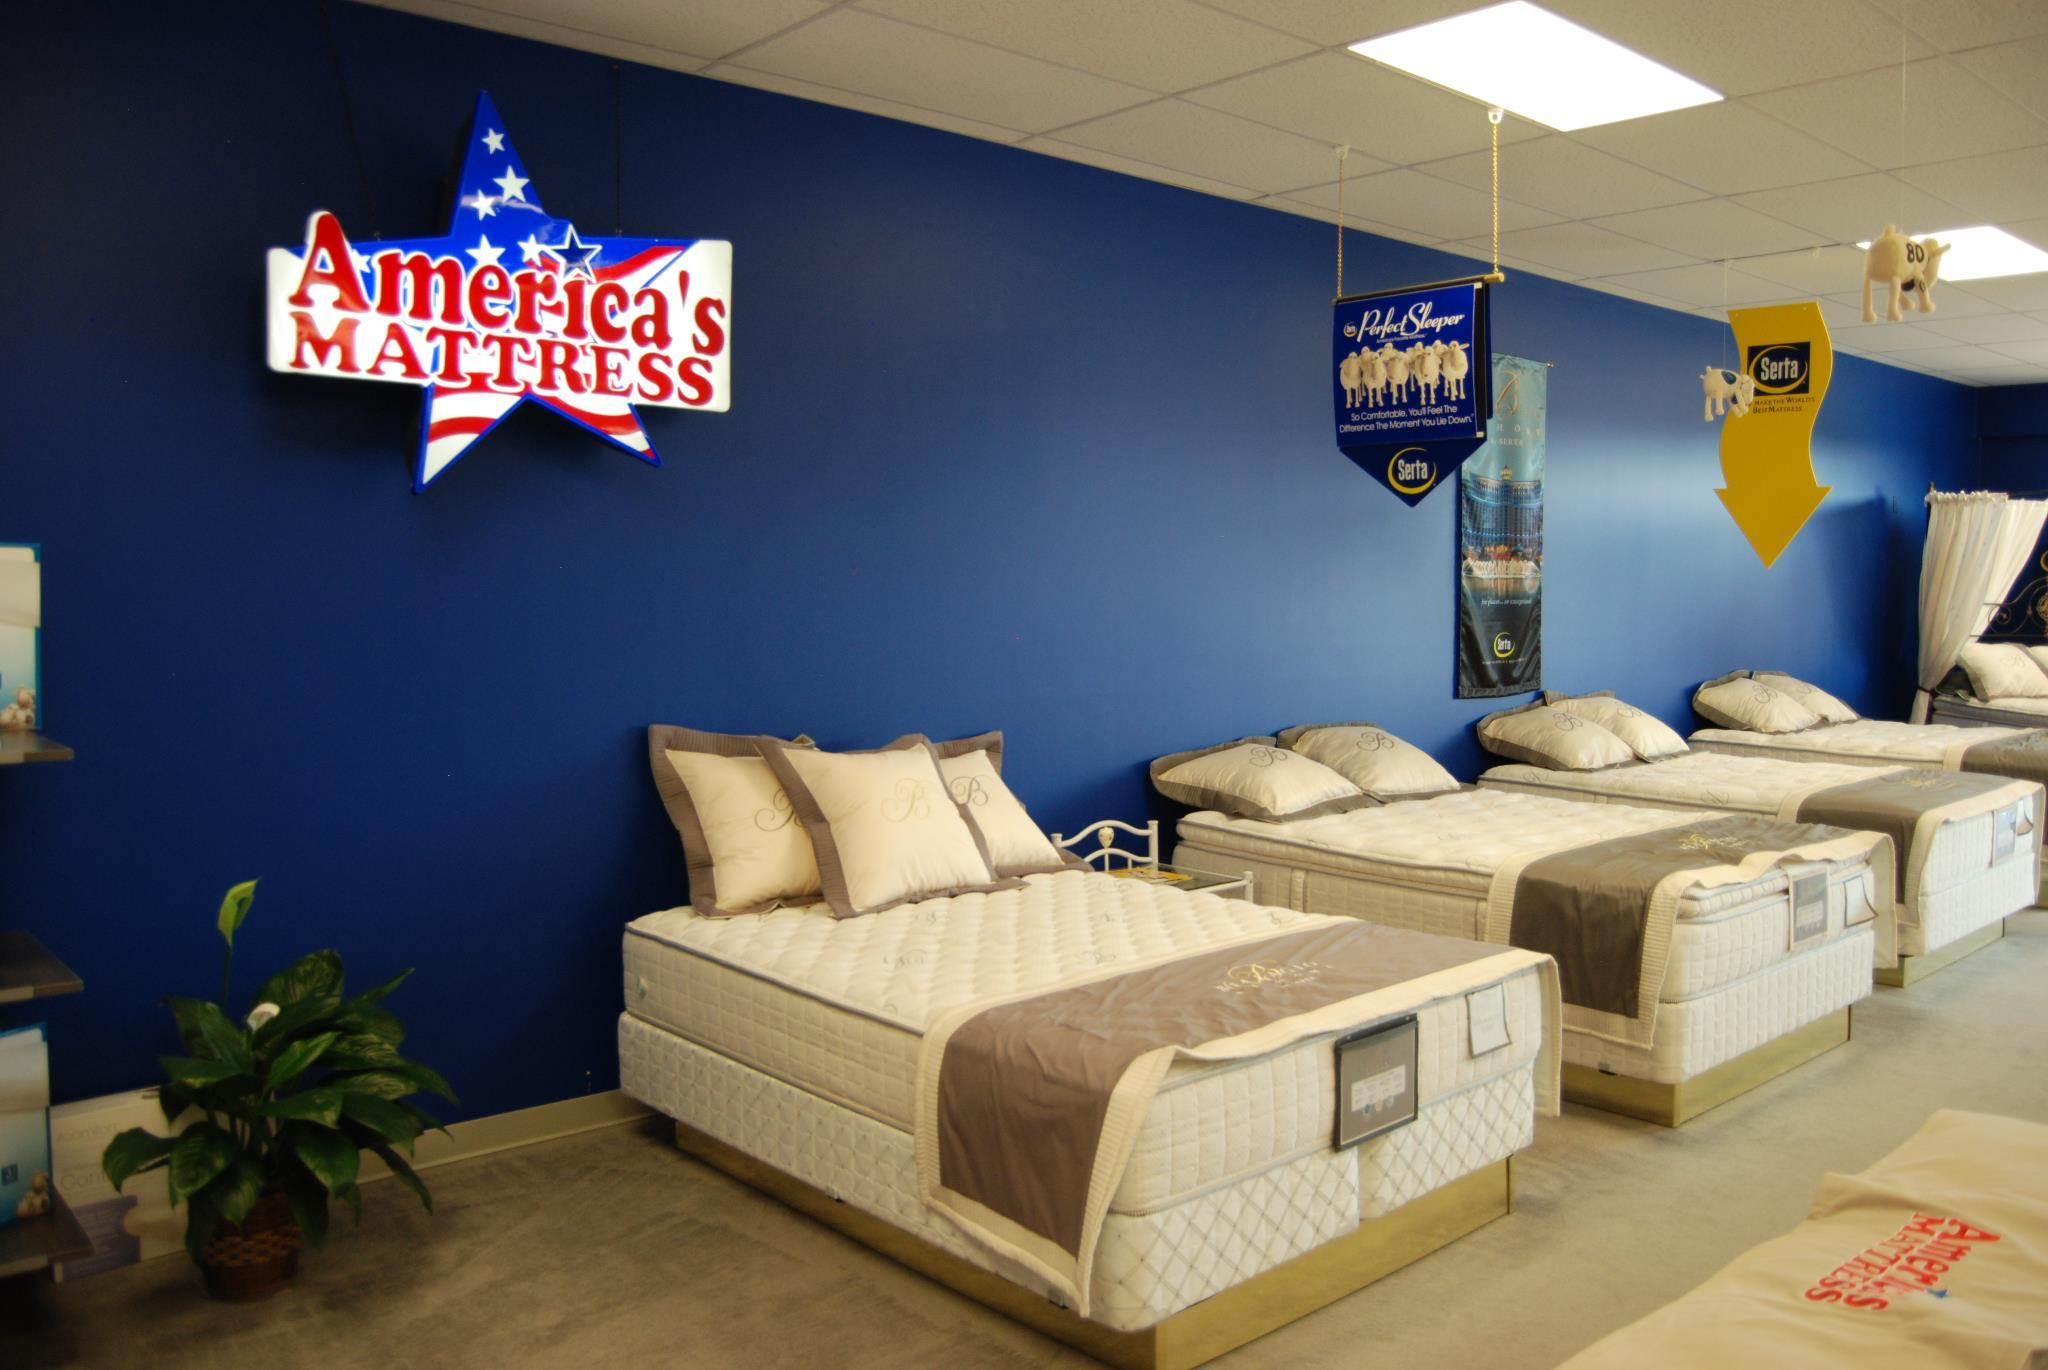 america 39 s mattress coupons near me in hays 8coupons. Black Bedroom Furniture Sets. Home Design Ideas